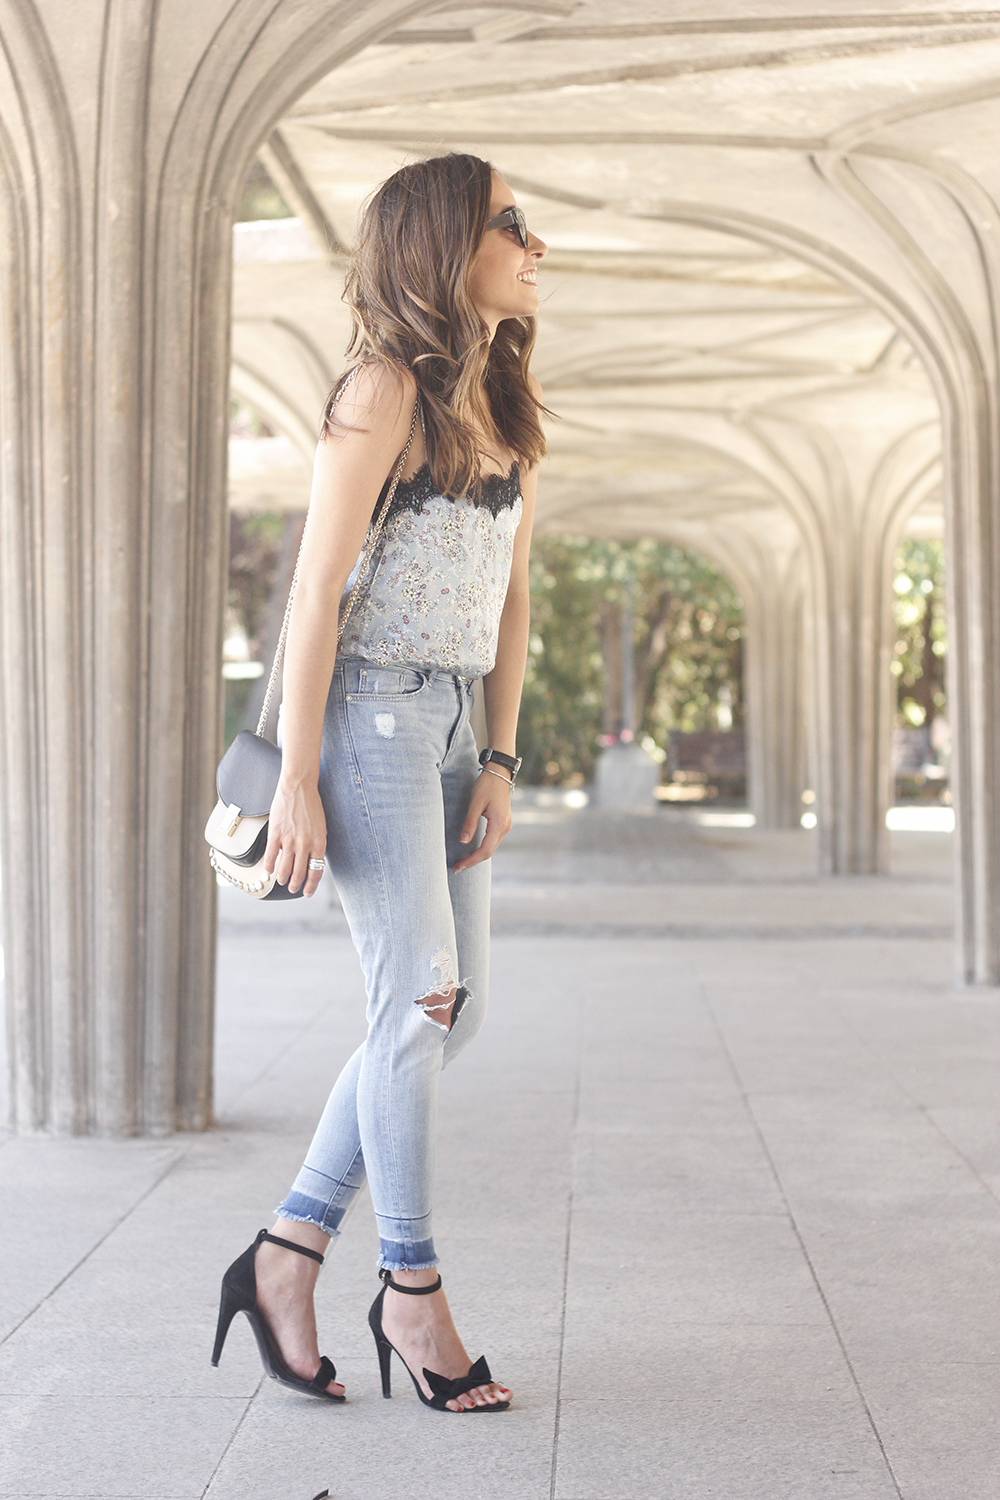 Lace top with skinny jeans heels summer outfit fashion style accesories19